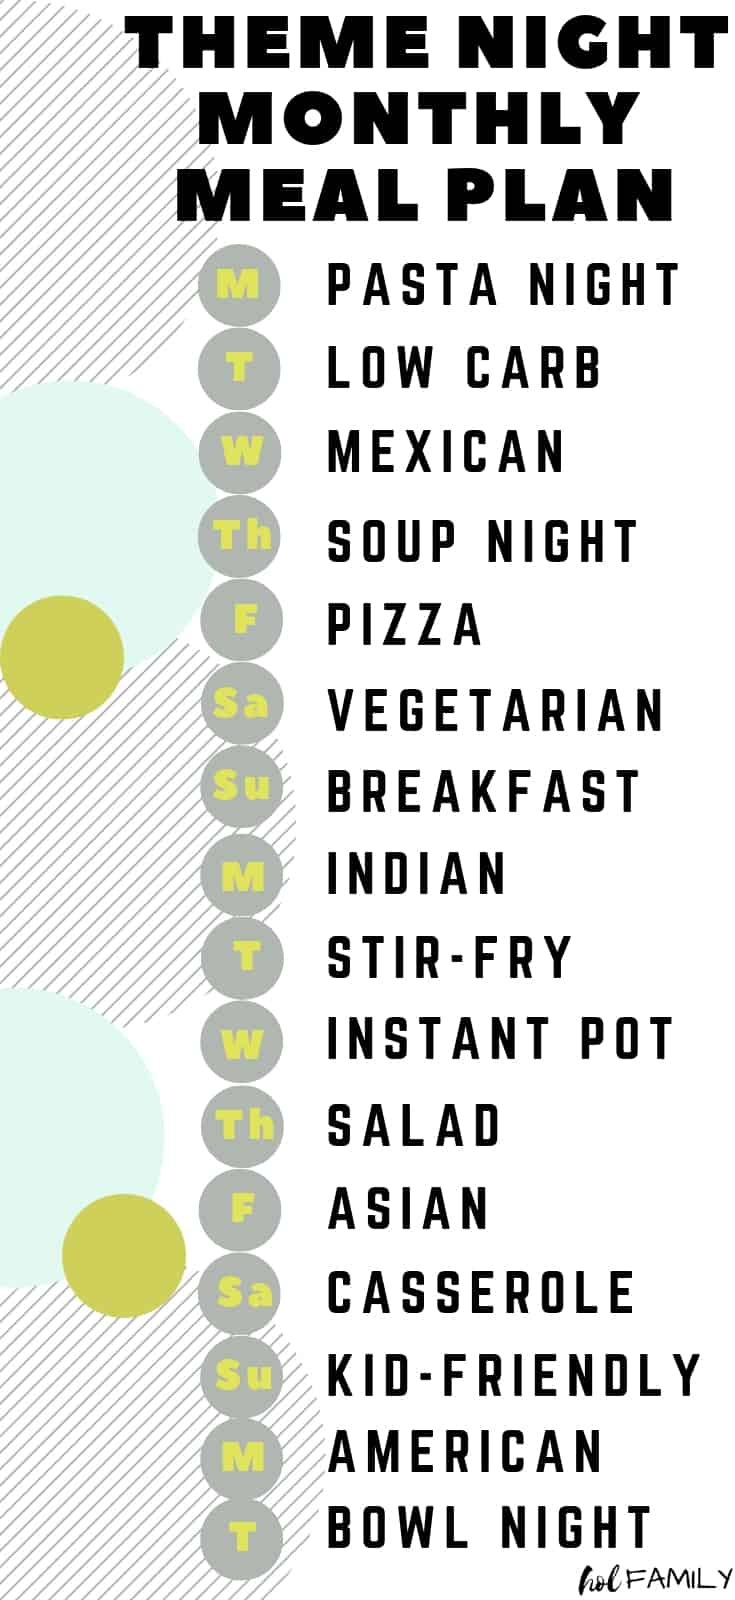 Theme Night Monthly Meal Plan